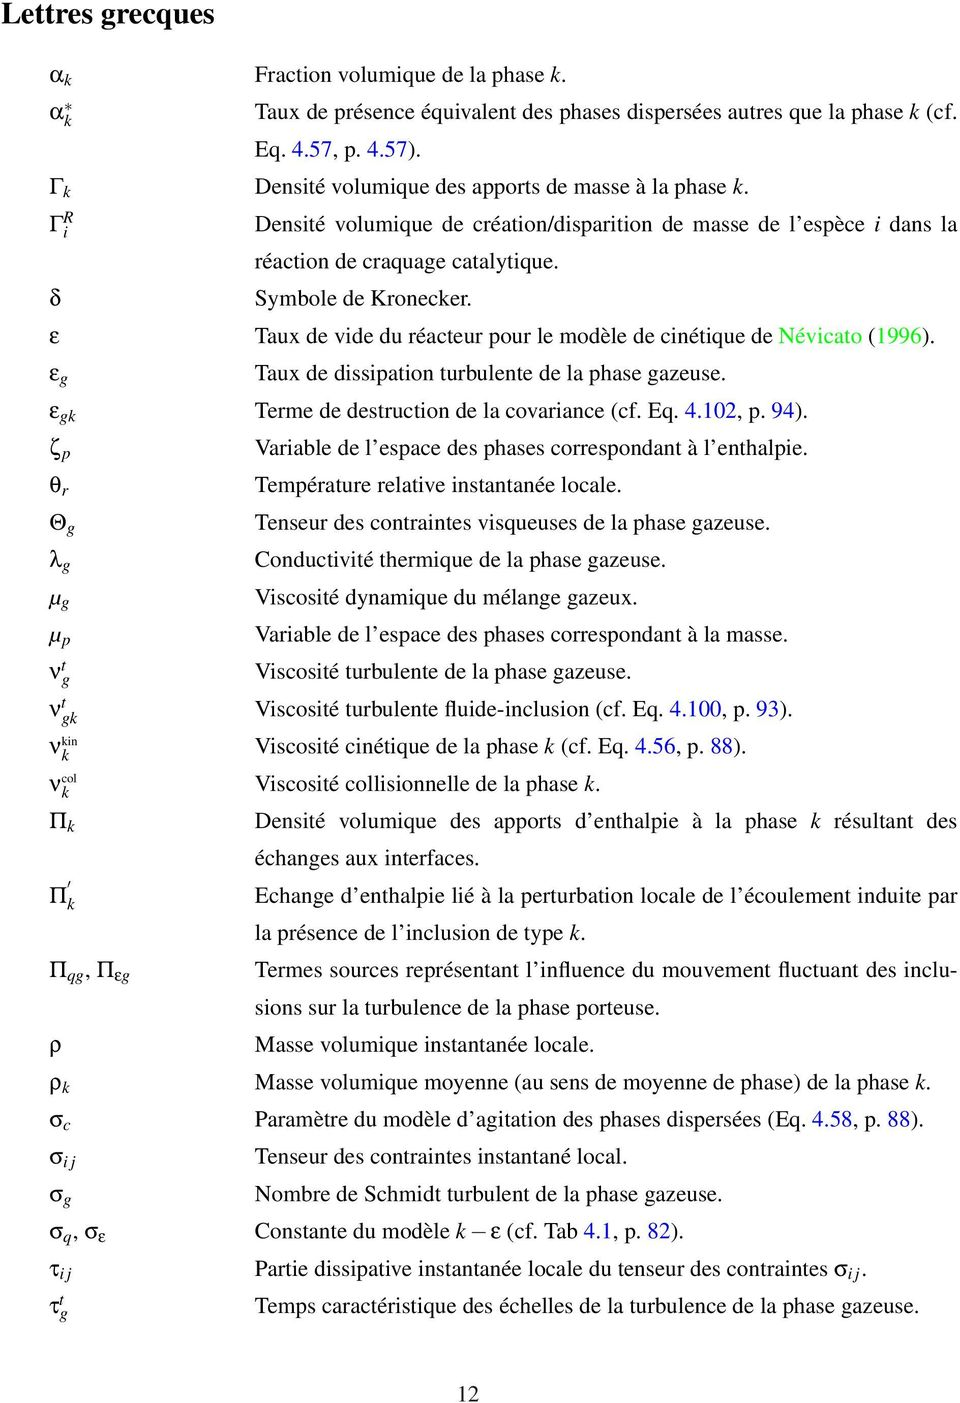 ε Taux de vide du réacteur pour le modèle de cinétique de Névicato (1996). ε g Taux de dissipation turbulente de la phase gazeuse. ε gk Terme de destruction de la covariance (cf. Eq. 4.102, p. 94).